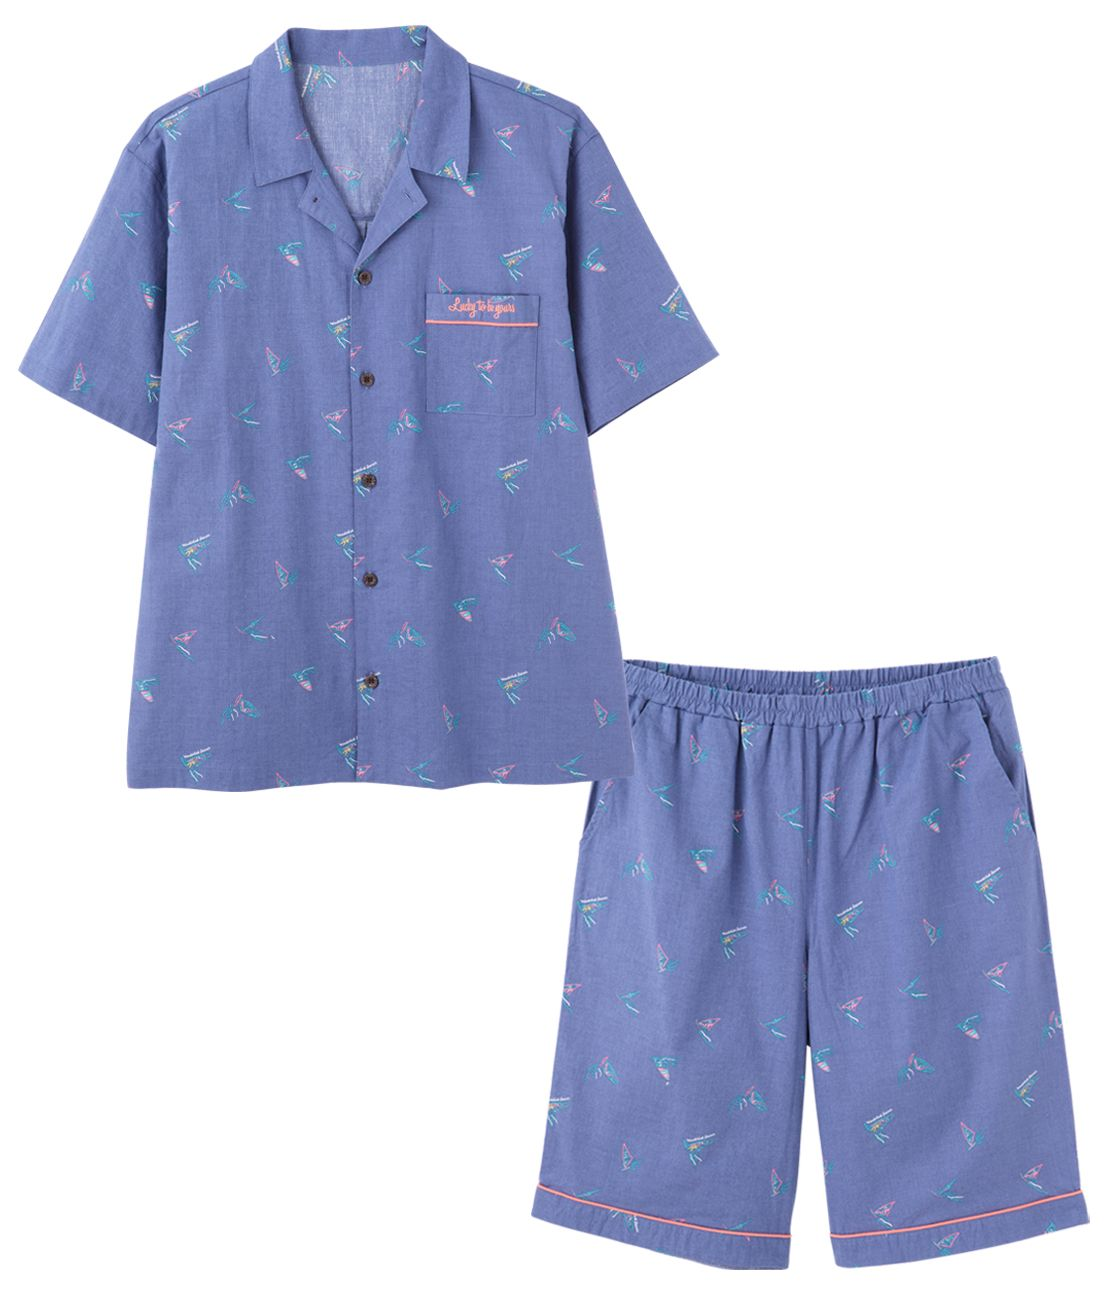 Men's cotton linen summer shirt pajamas